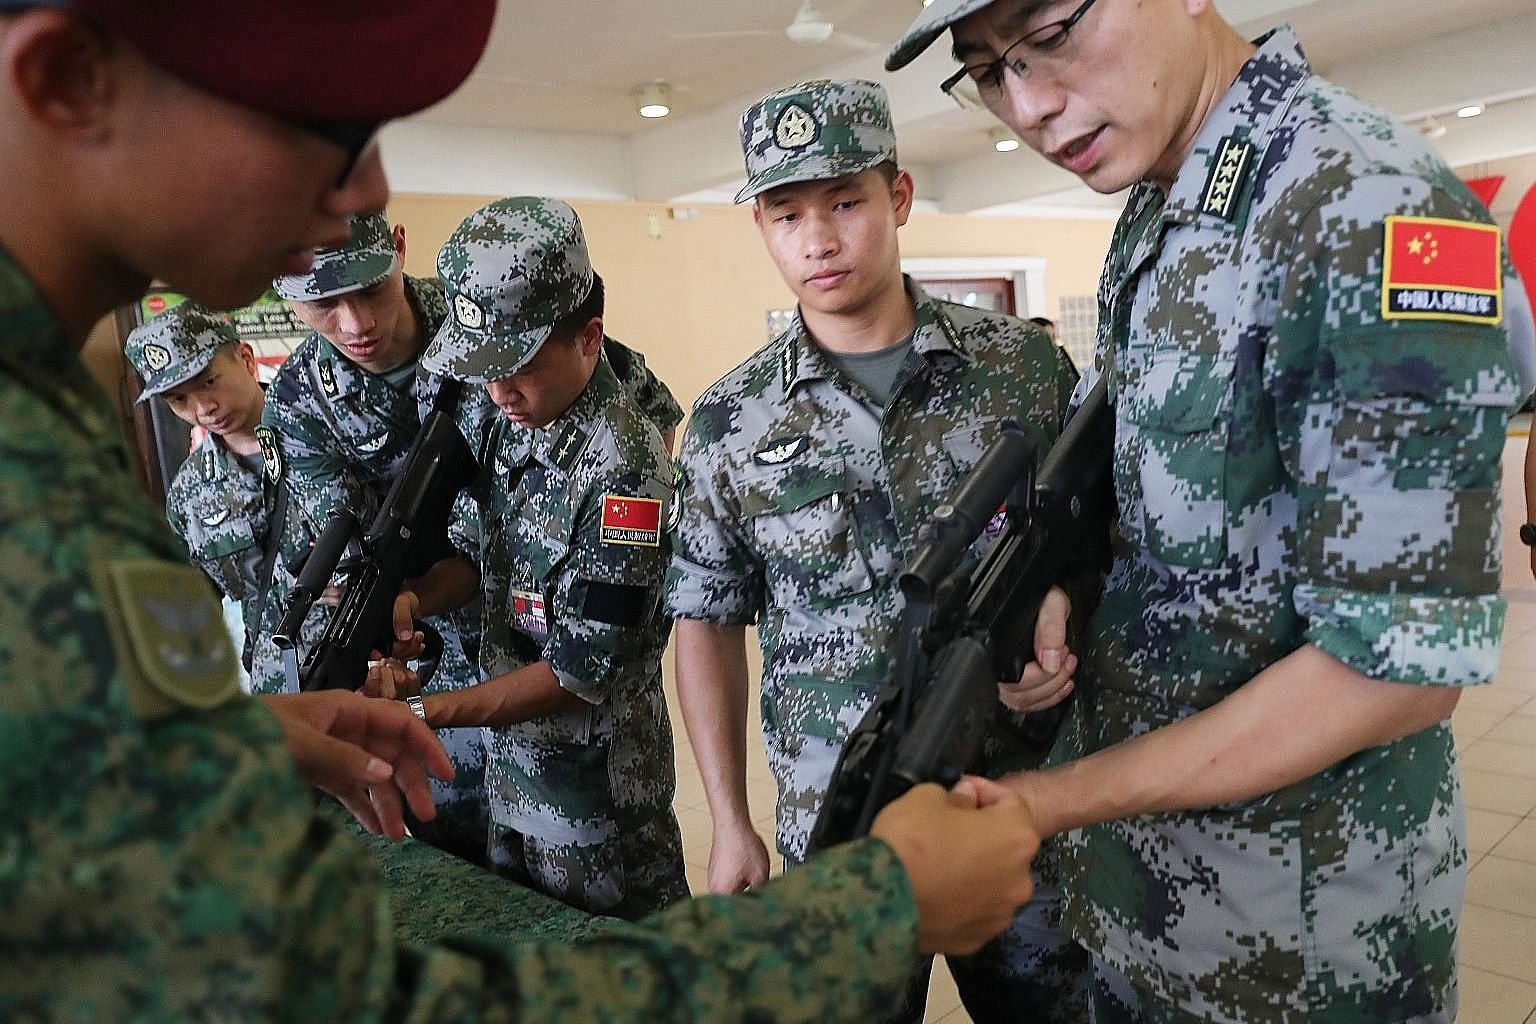 Exercise Cooperation involves about 240 soldiers from the Singapore Army's 3rd Singapore Division and 1st Commando Battalion, as well as the People's Liberation Army's Southern Theatre Command Army's 74th Army Group. PHOTO: LIANHE ZAOBAO